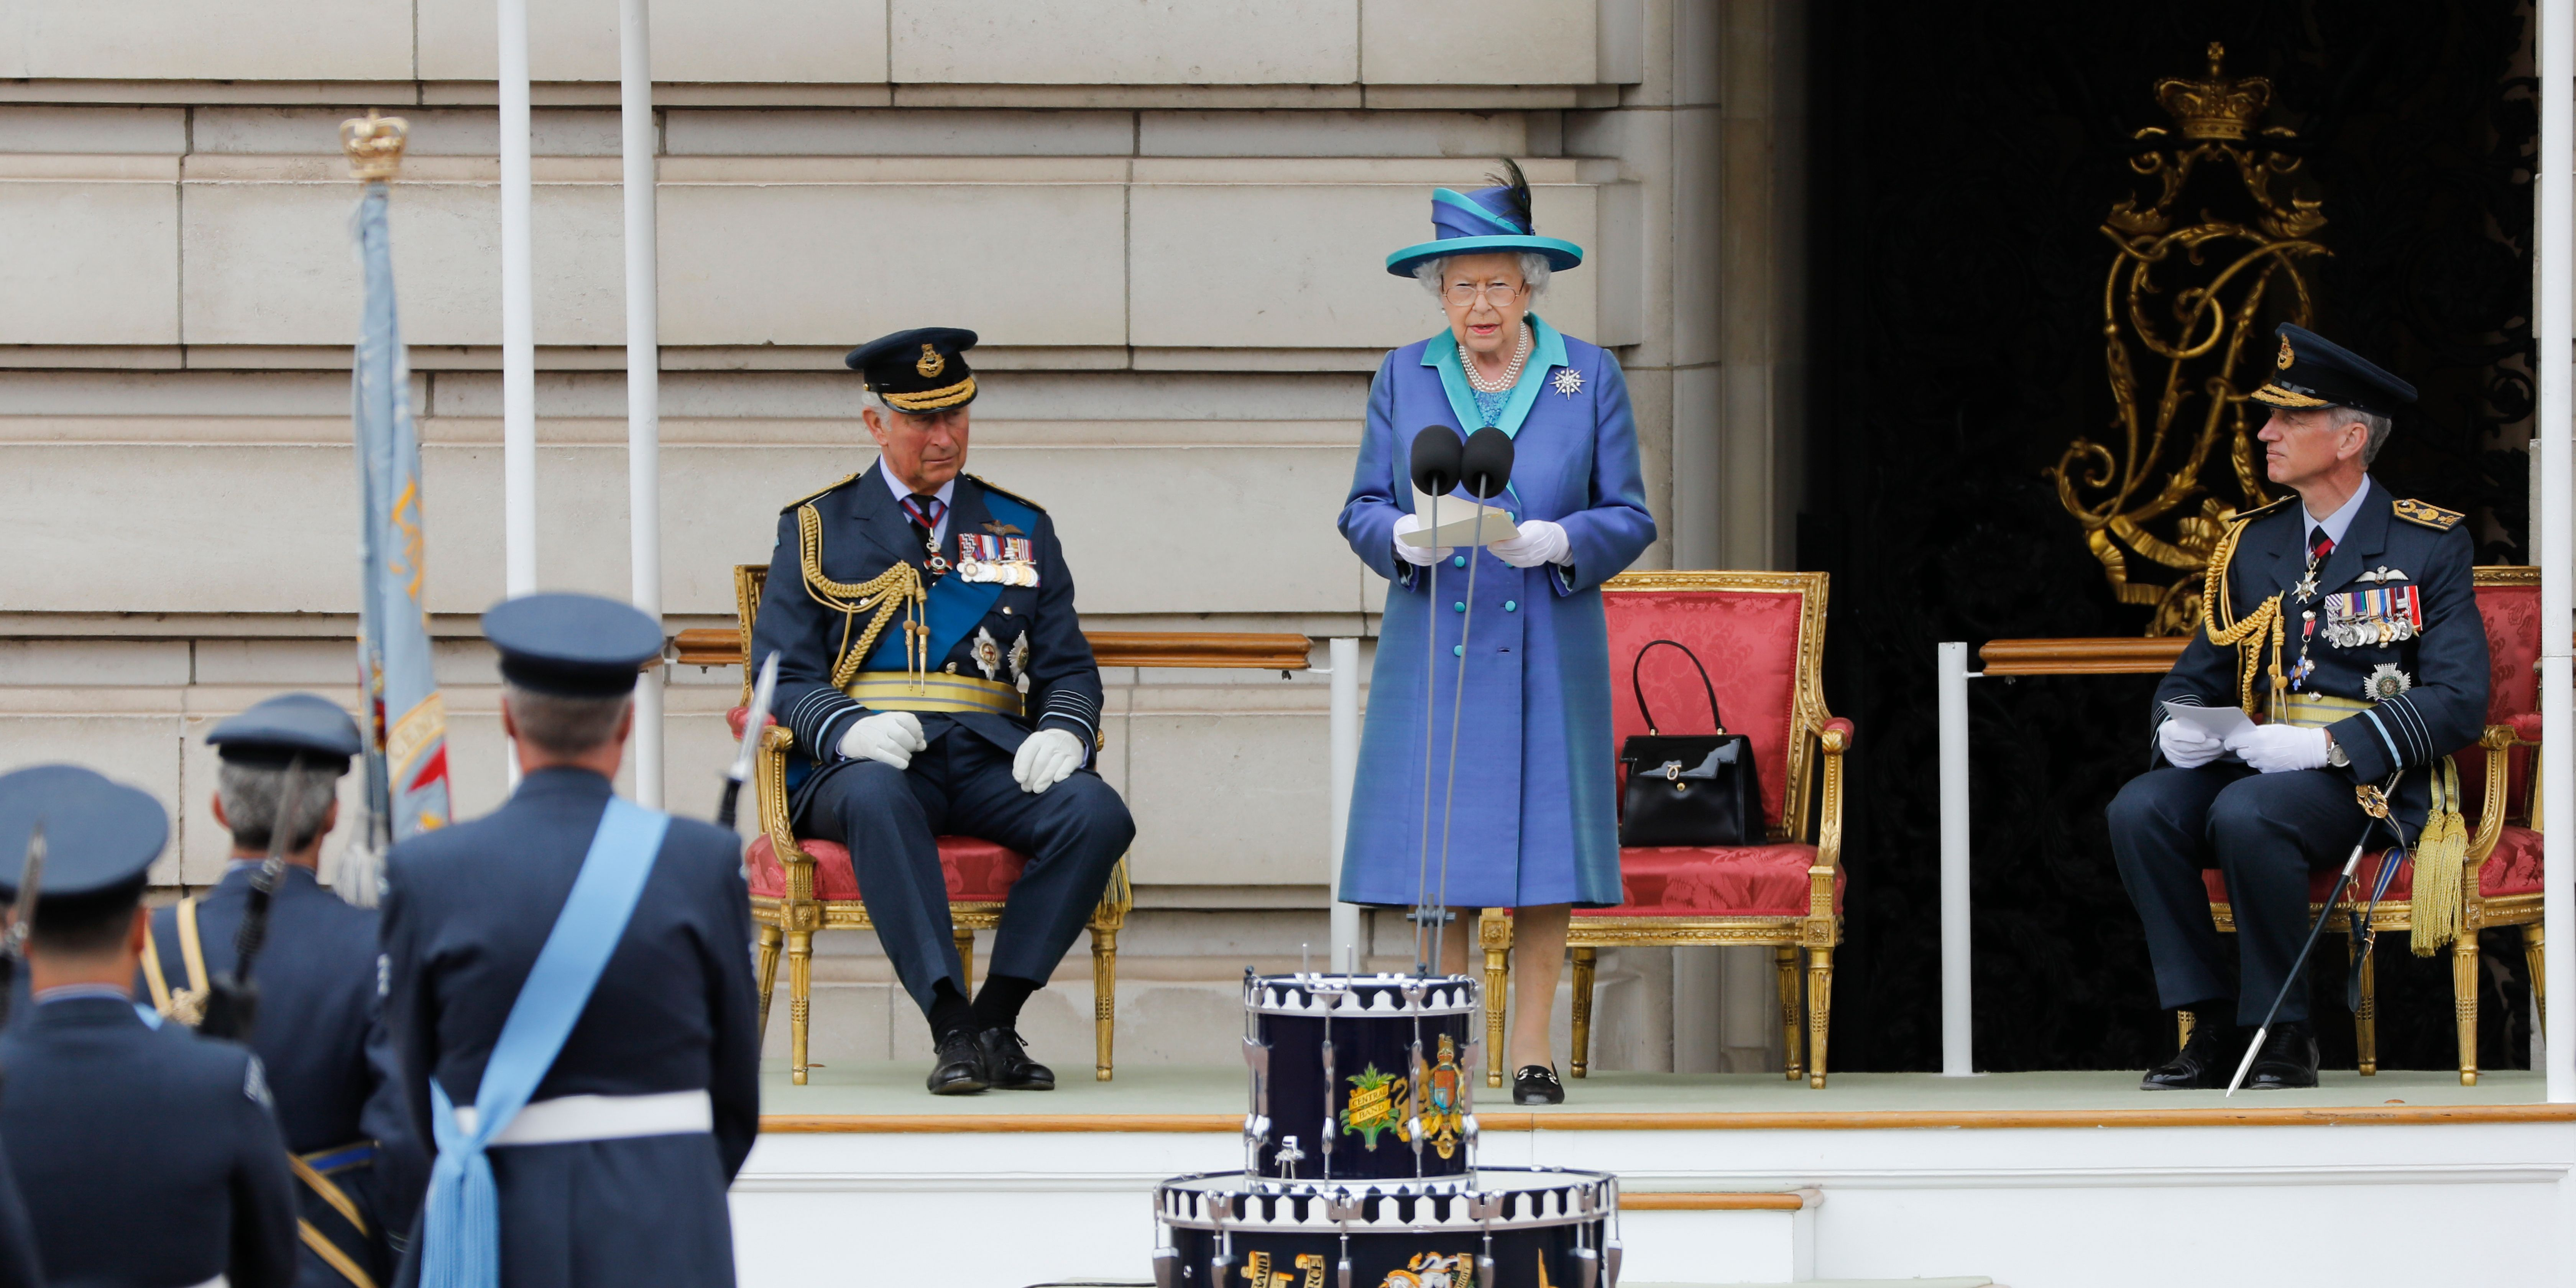 BRITAIN-ROYALS-RAF-DEFENCE-CENENTARY